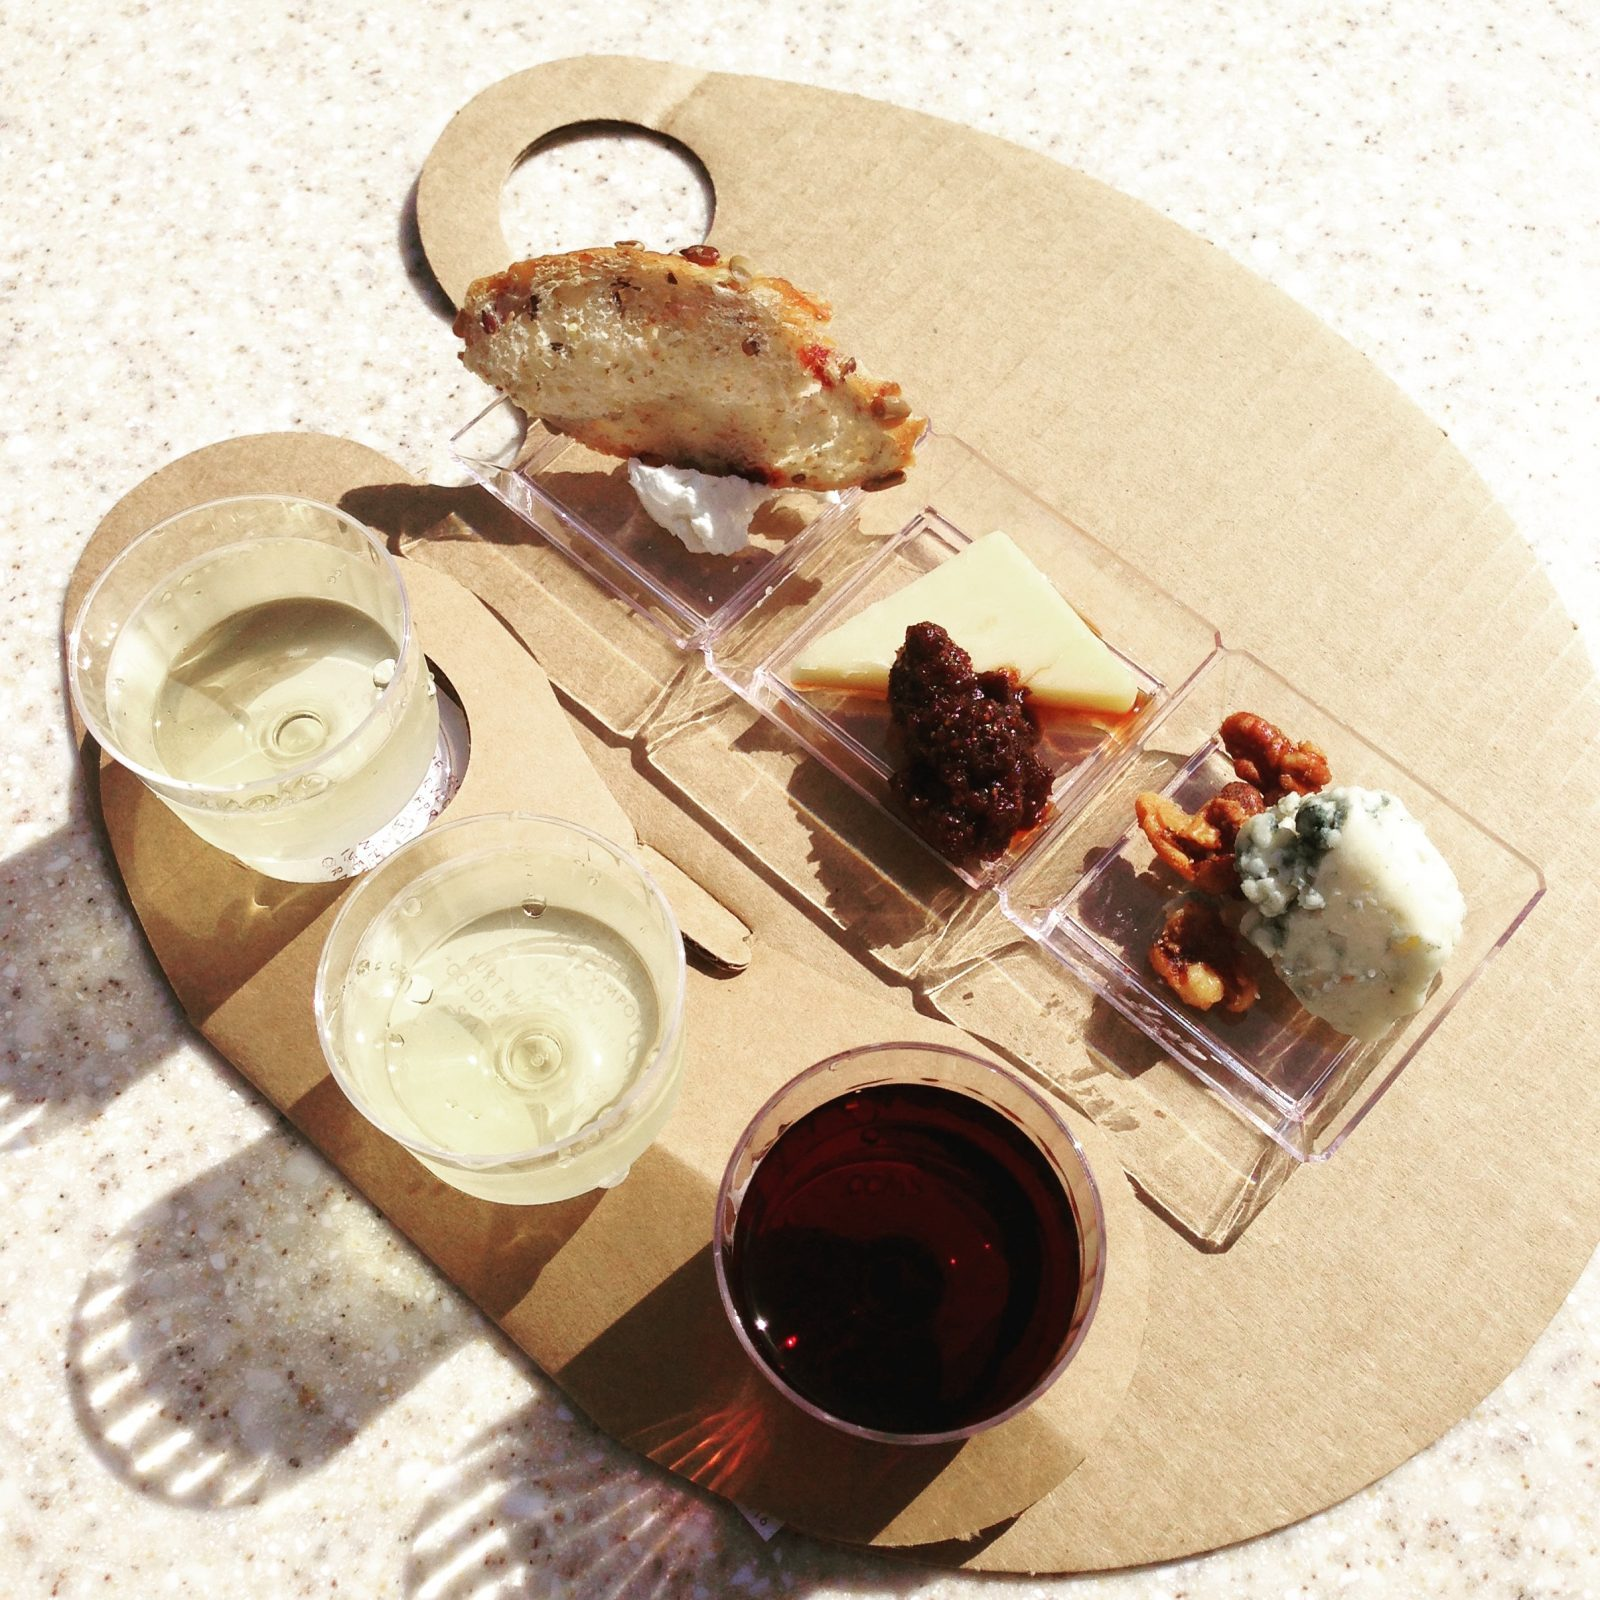 food and drink samples